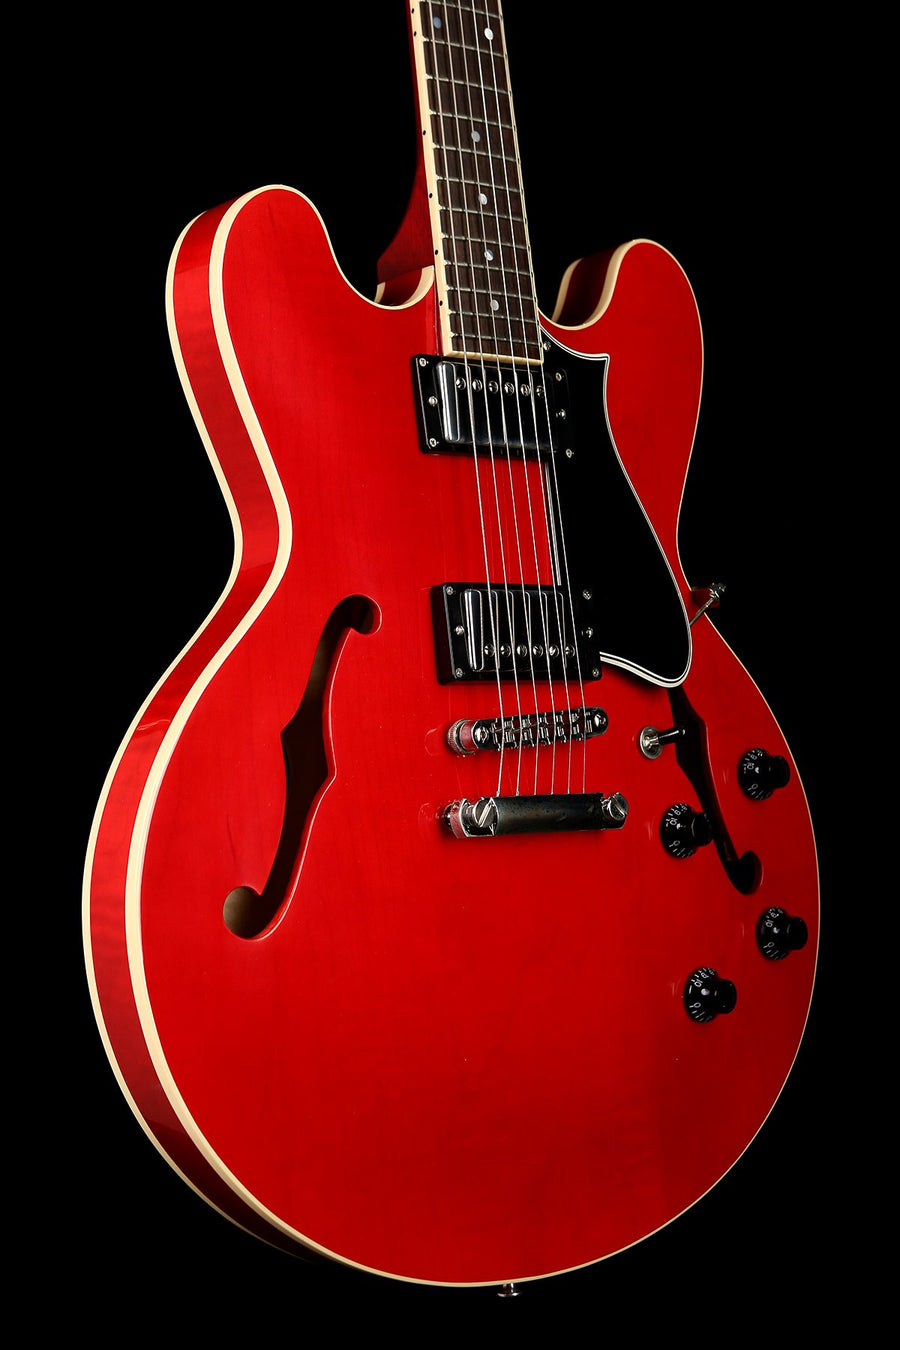 Heritage H-535 Translucent Cherry Electric Guitar